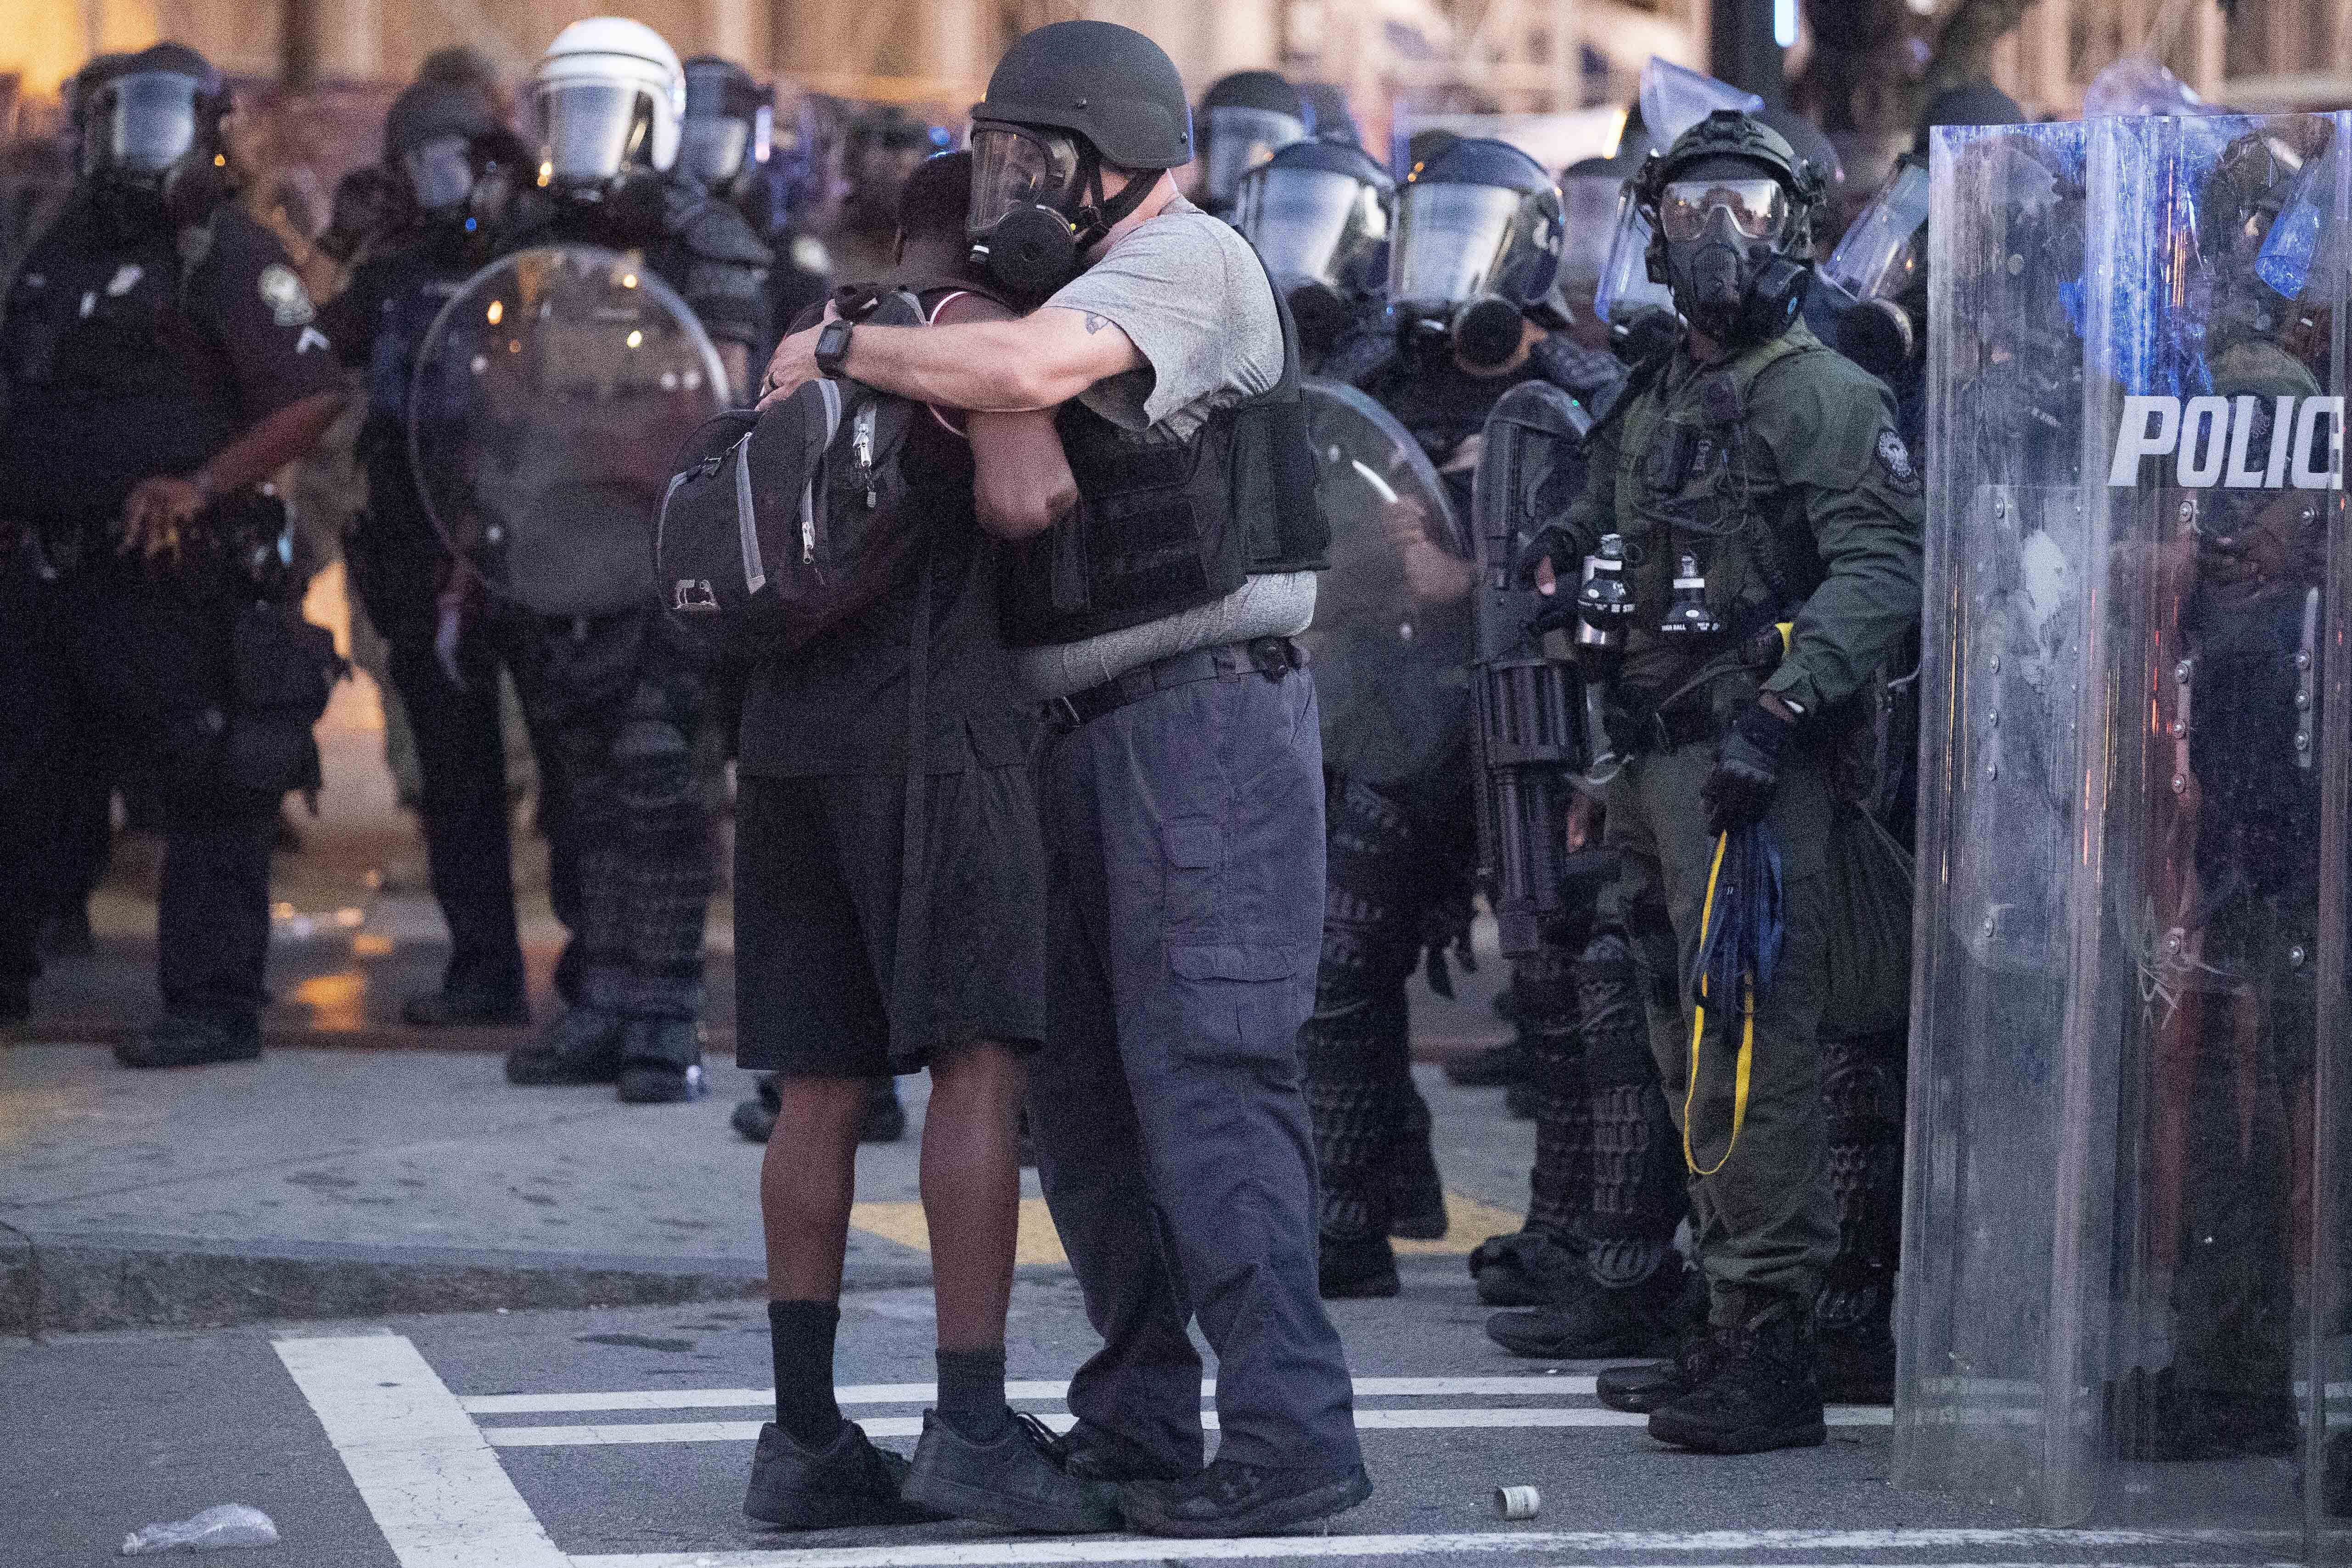 A police officer embraces a protester in Atlanta on June 1.